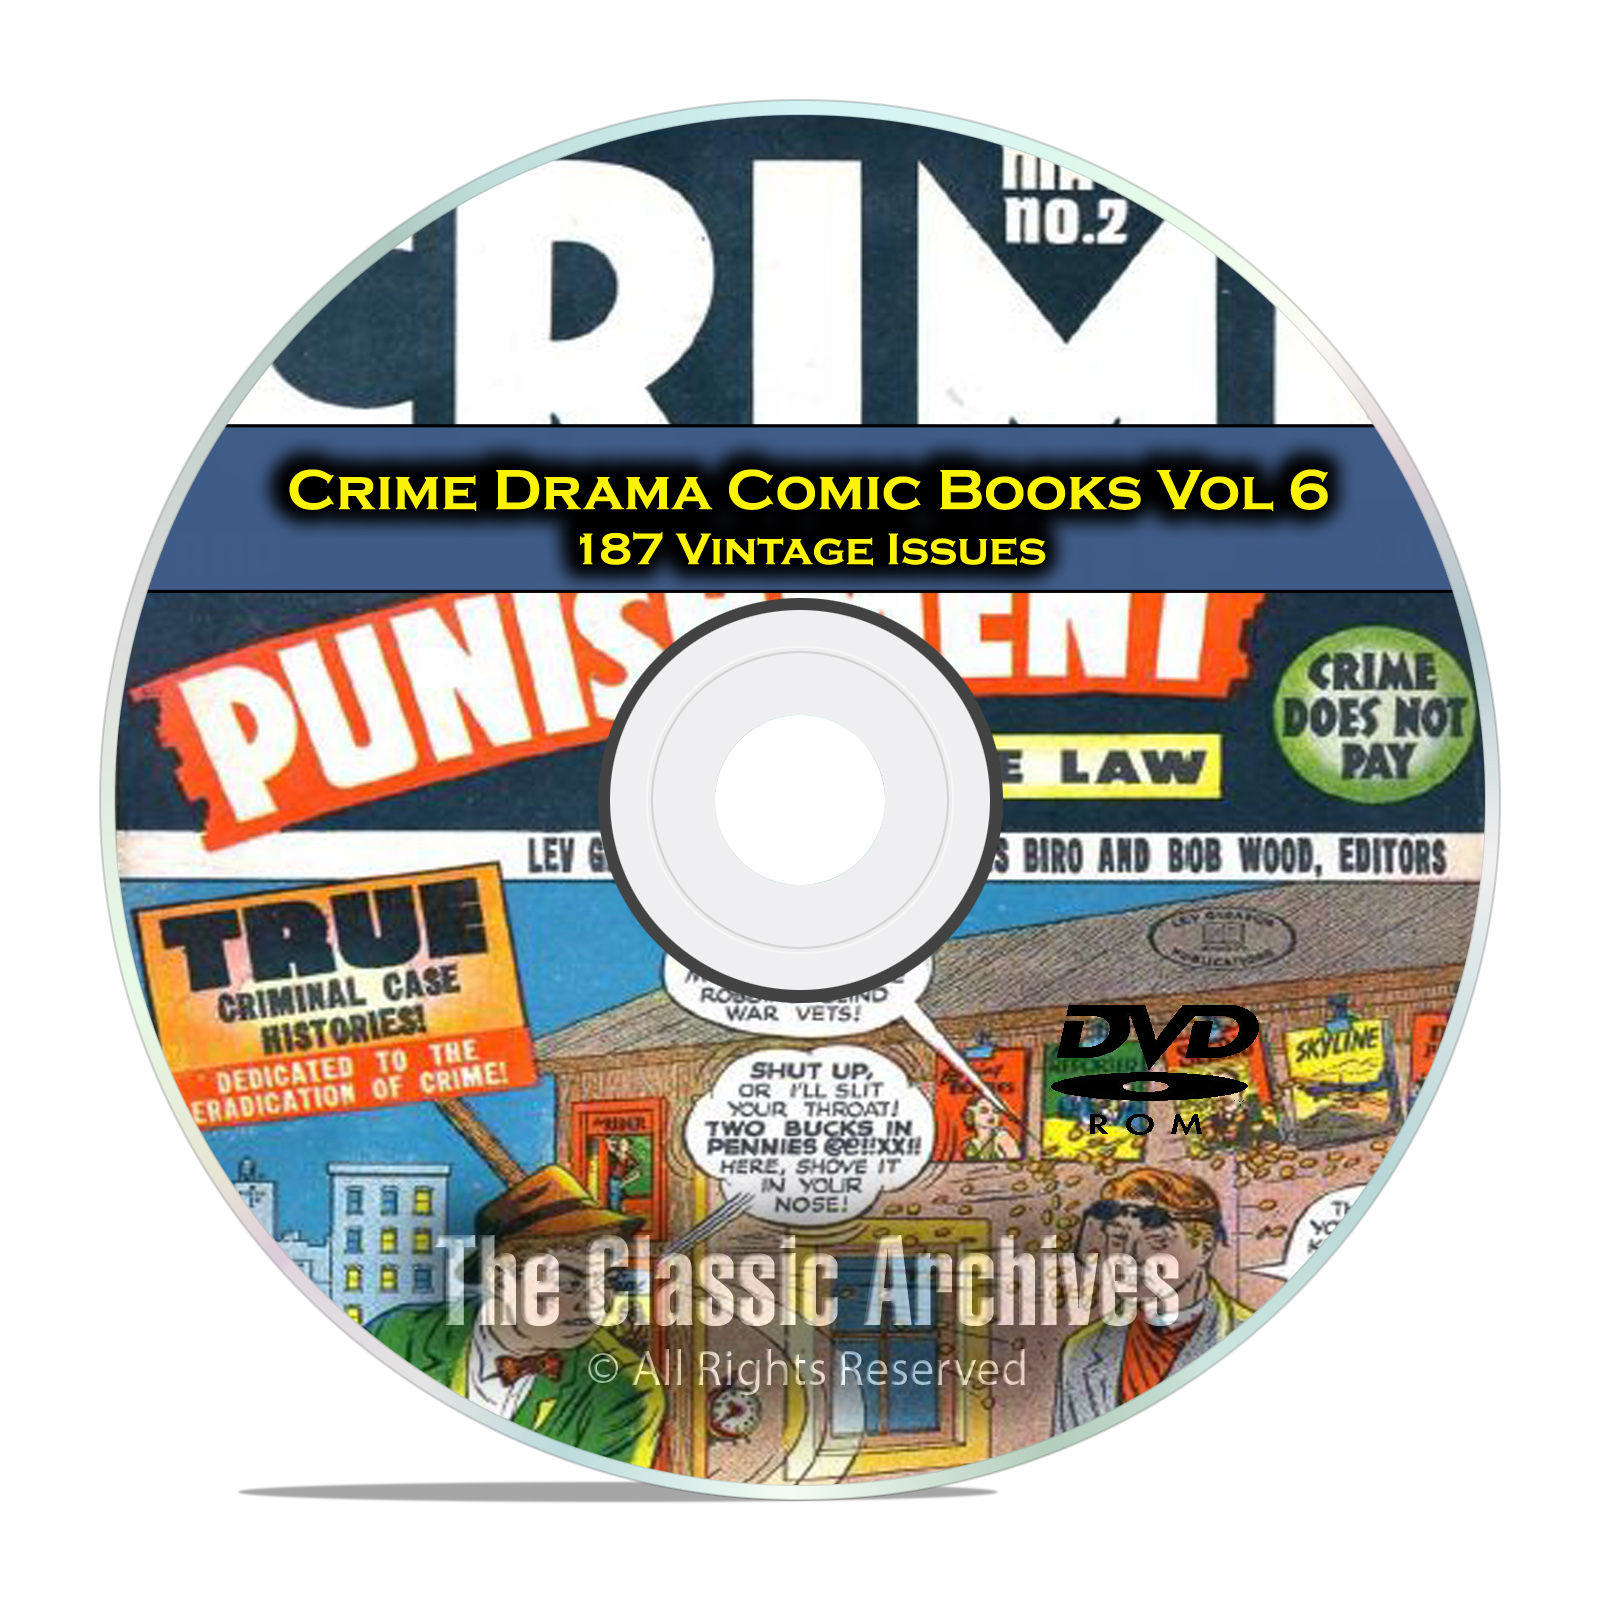 Crime Drama, Suspense, Vol 6, Crime and Punishment, Golden Age Comics DVD